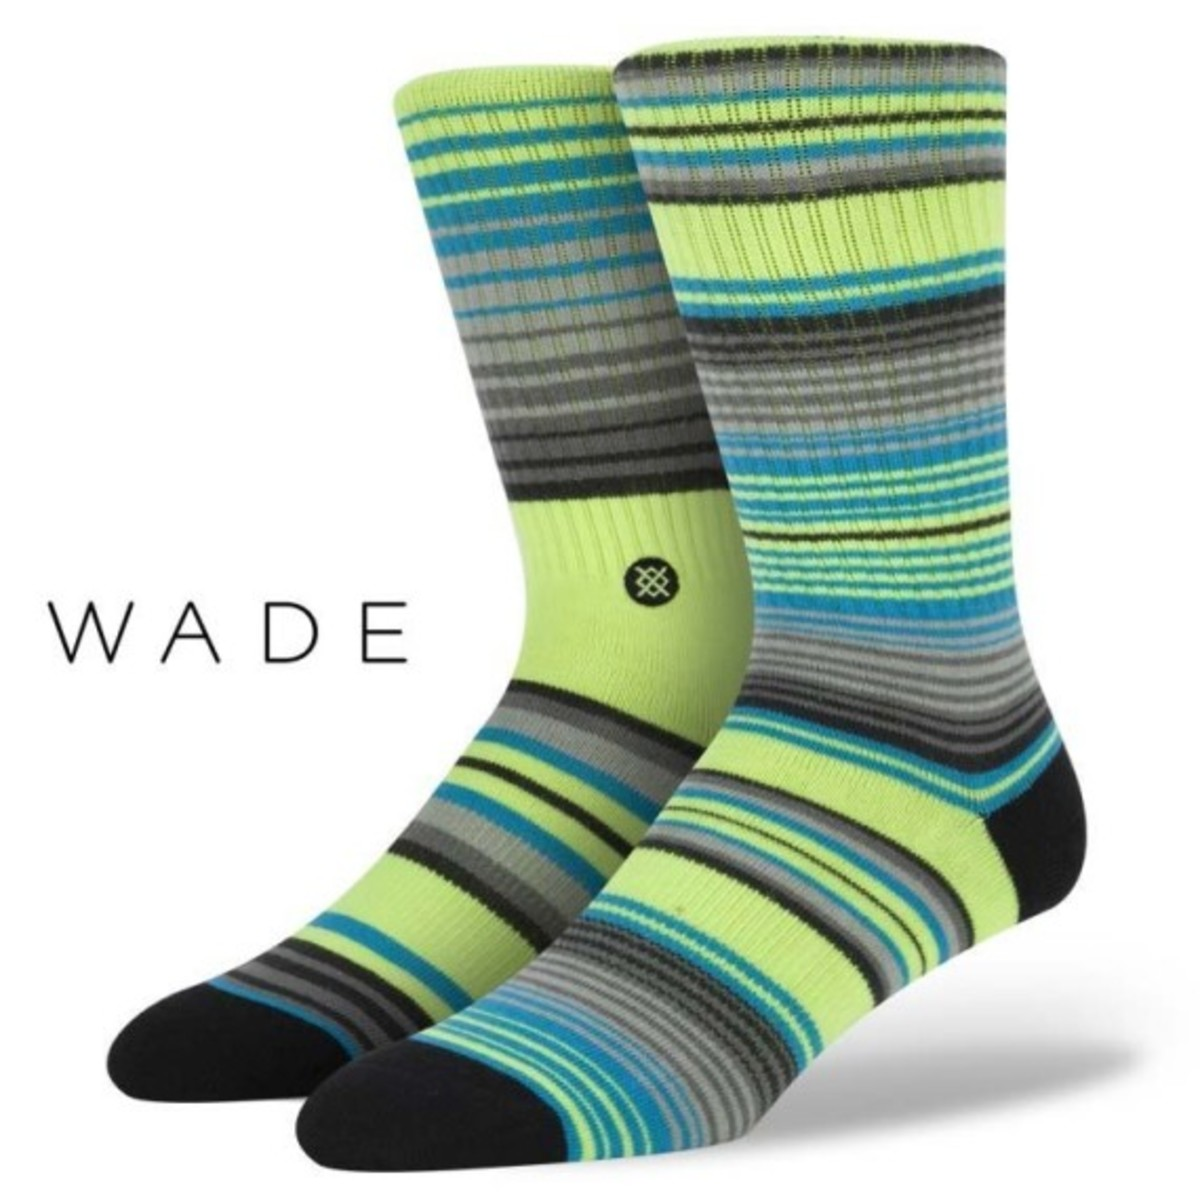 dwyane-wade-socks-collection-03